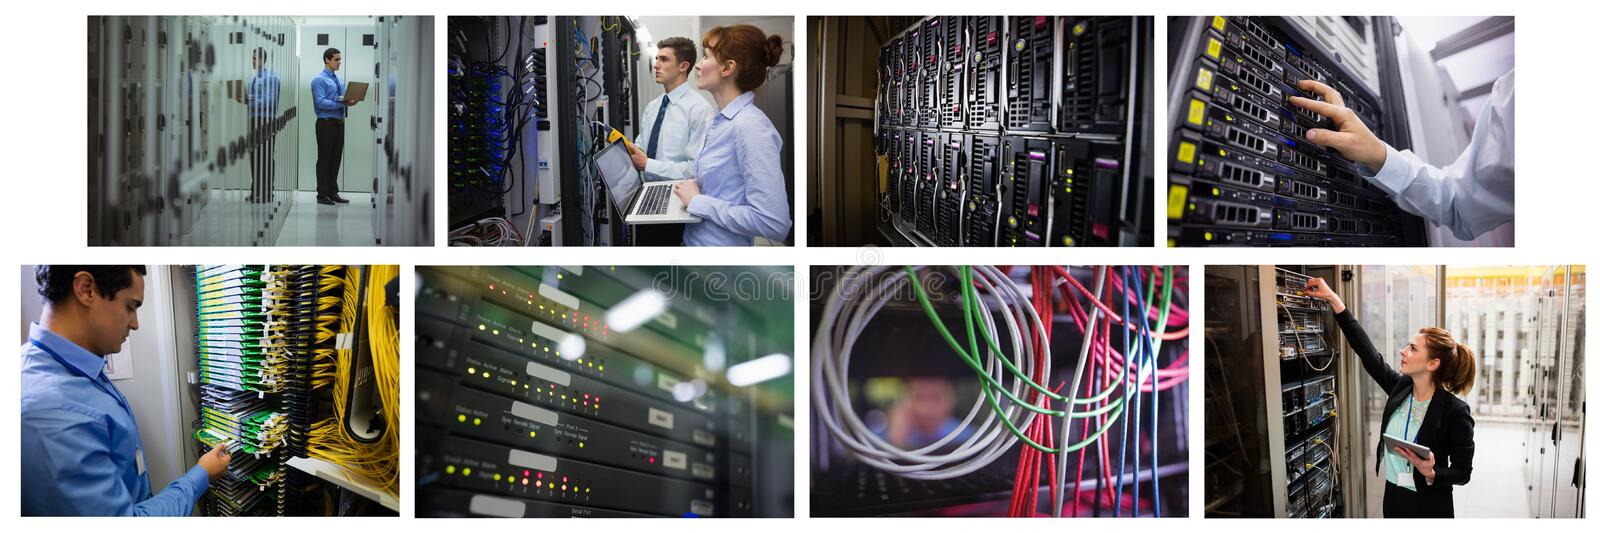 Hardware server room collage. Digital composite of hardware server room collage royalty free stock image